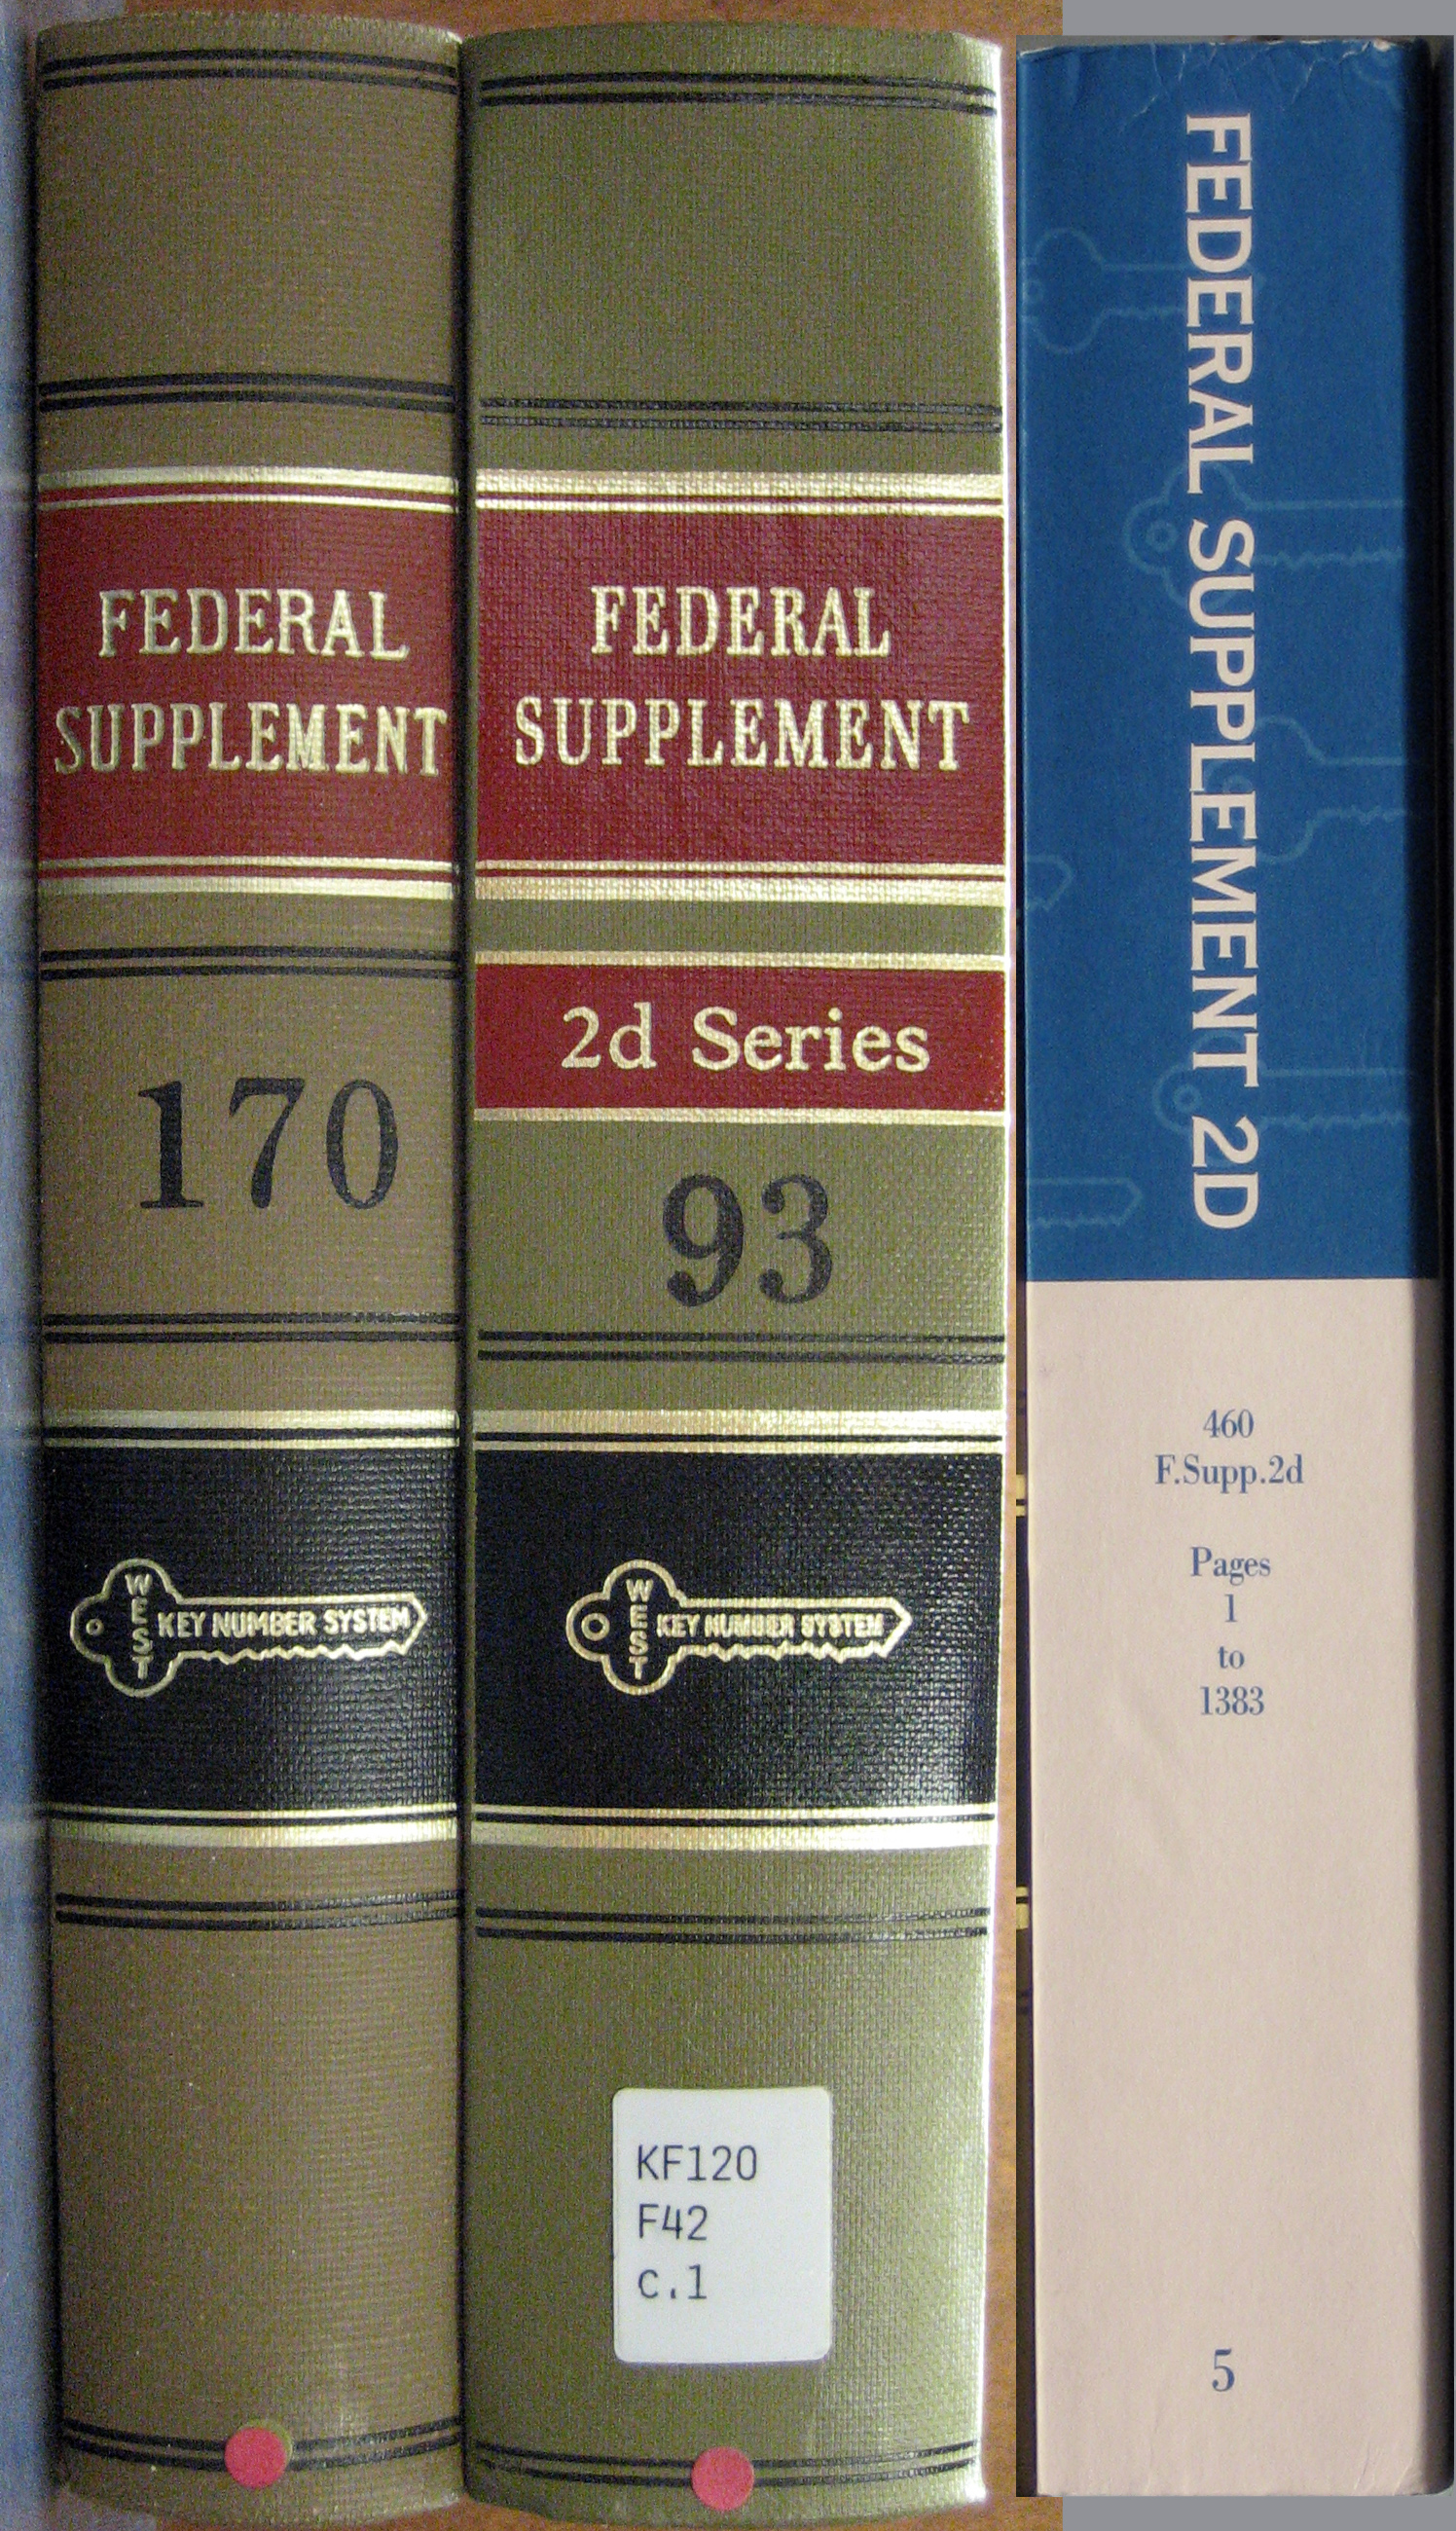 Federal Supplement books